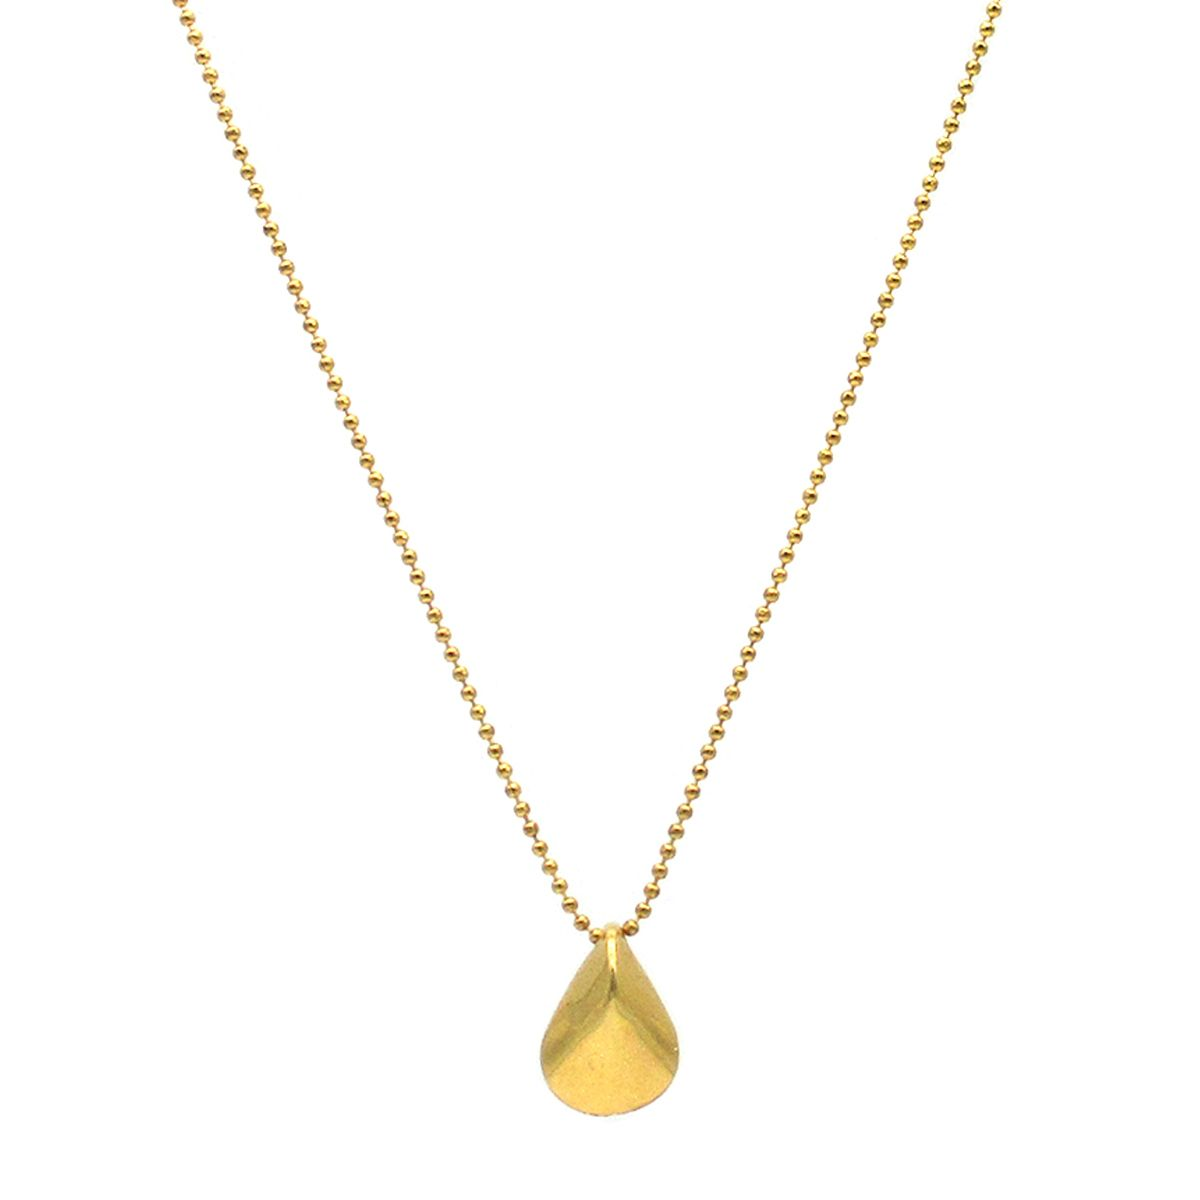 Hecate Gold chain necklace